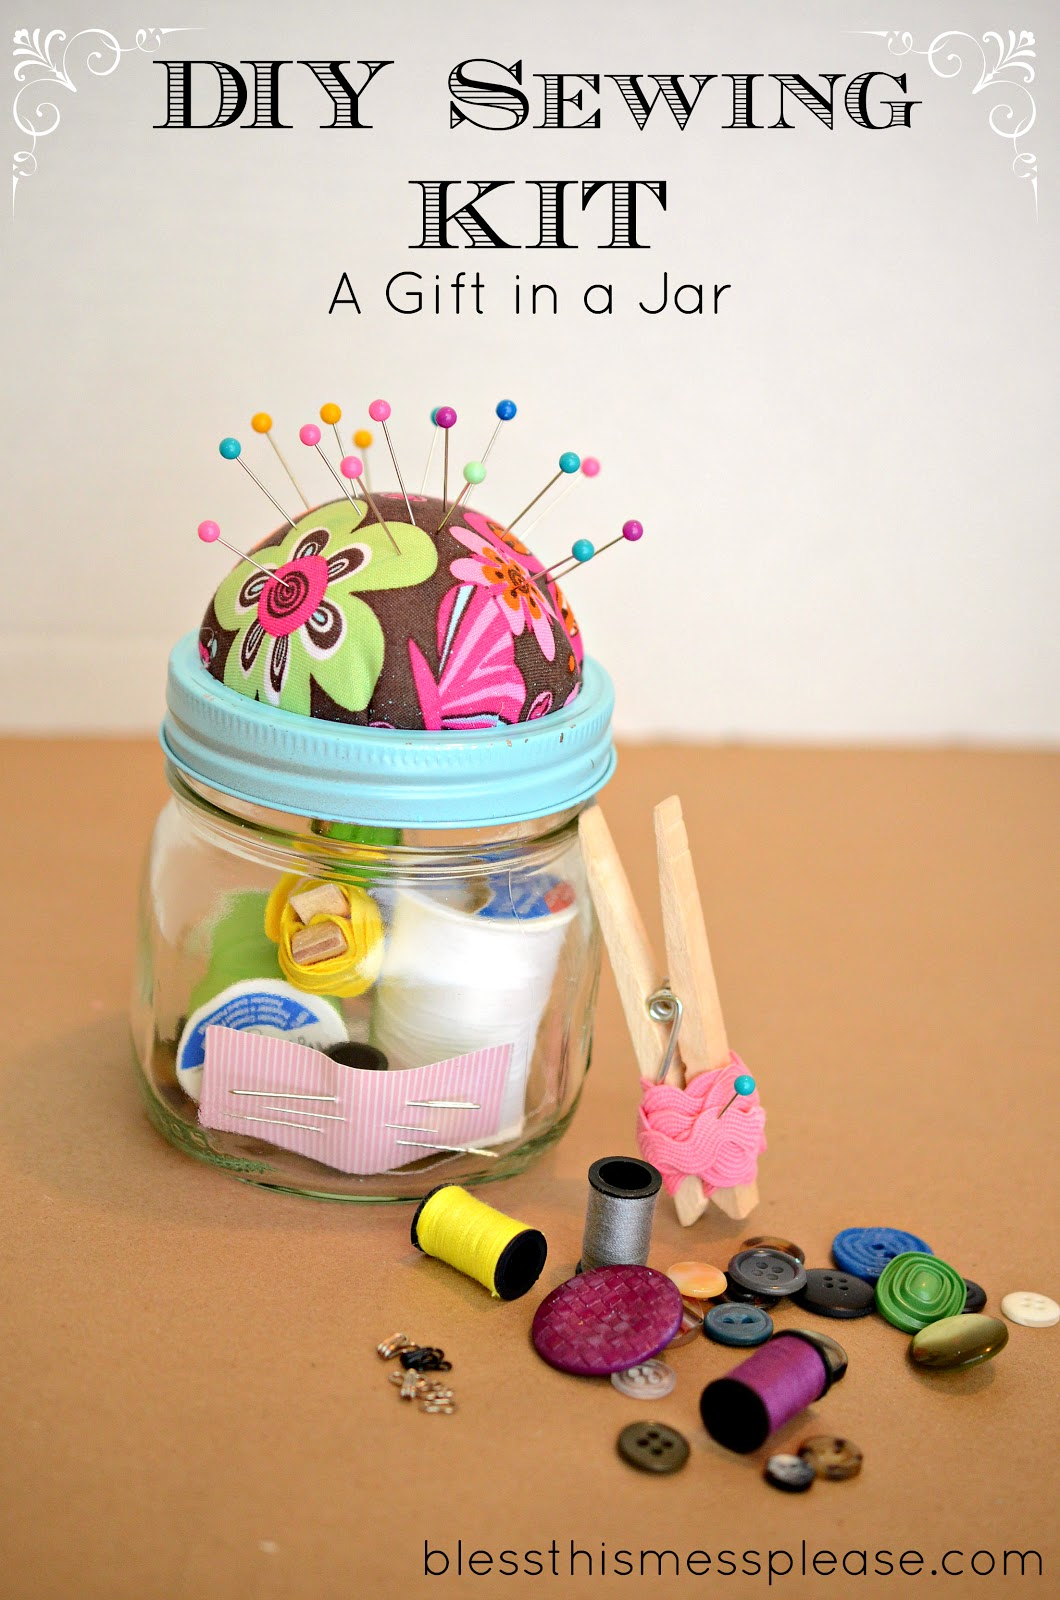 DIY Sewing Kit Gift in a Jar - Bless This Mess